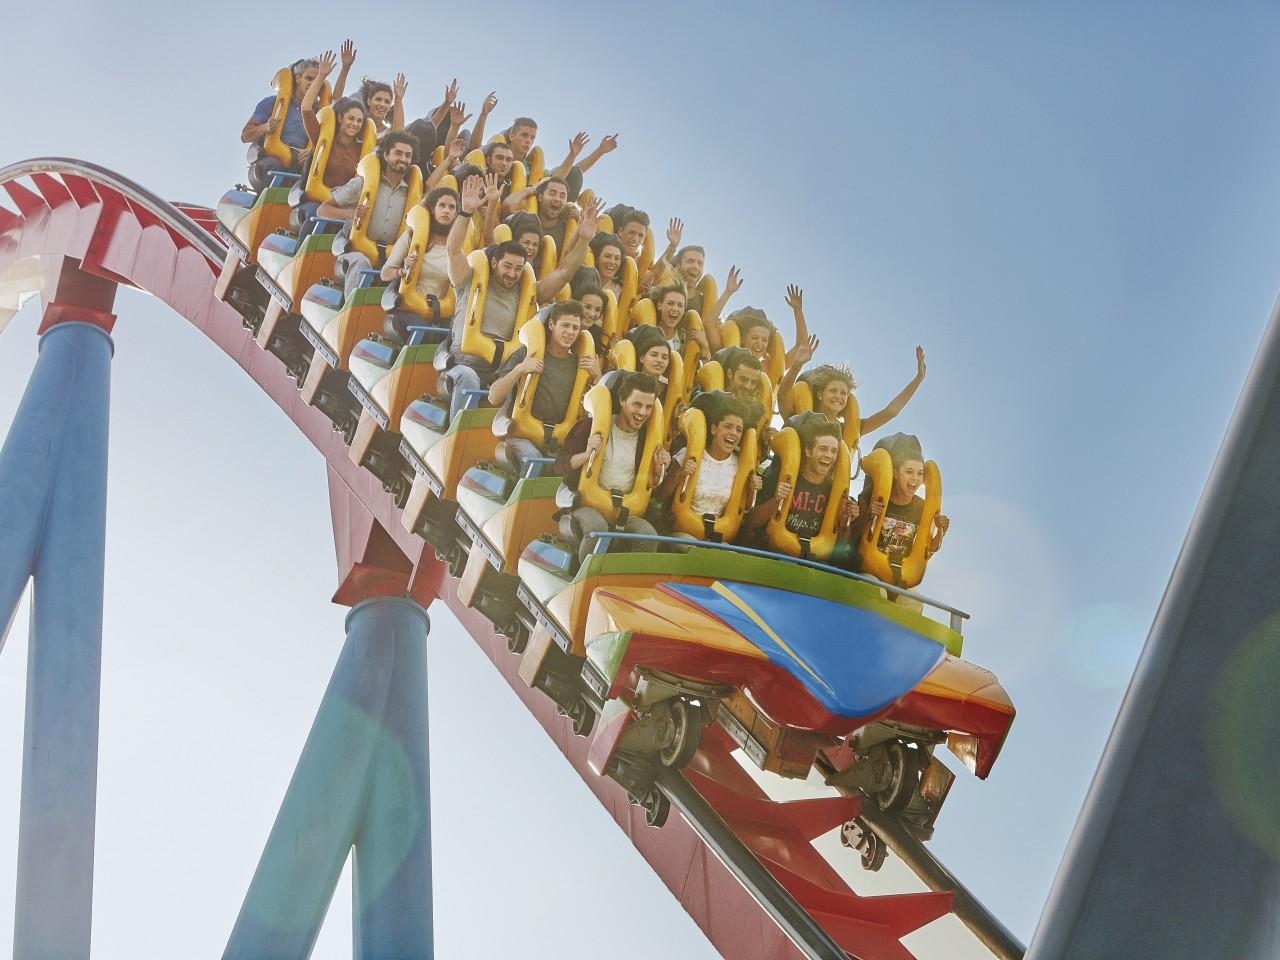 OVER 40 RIDES TO EXPERIENCE